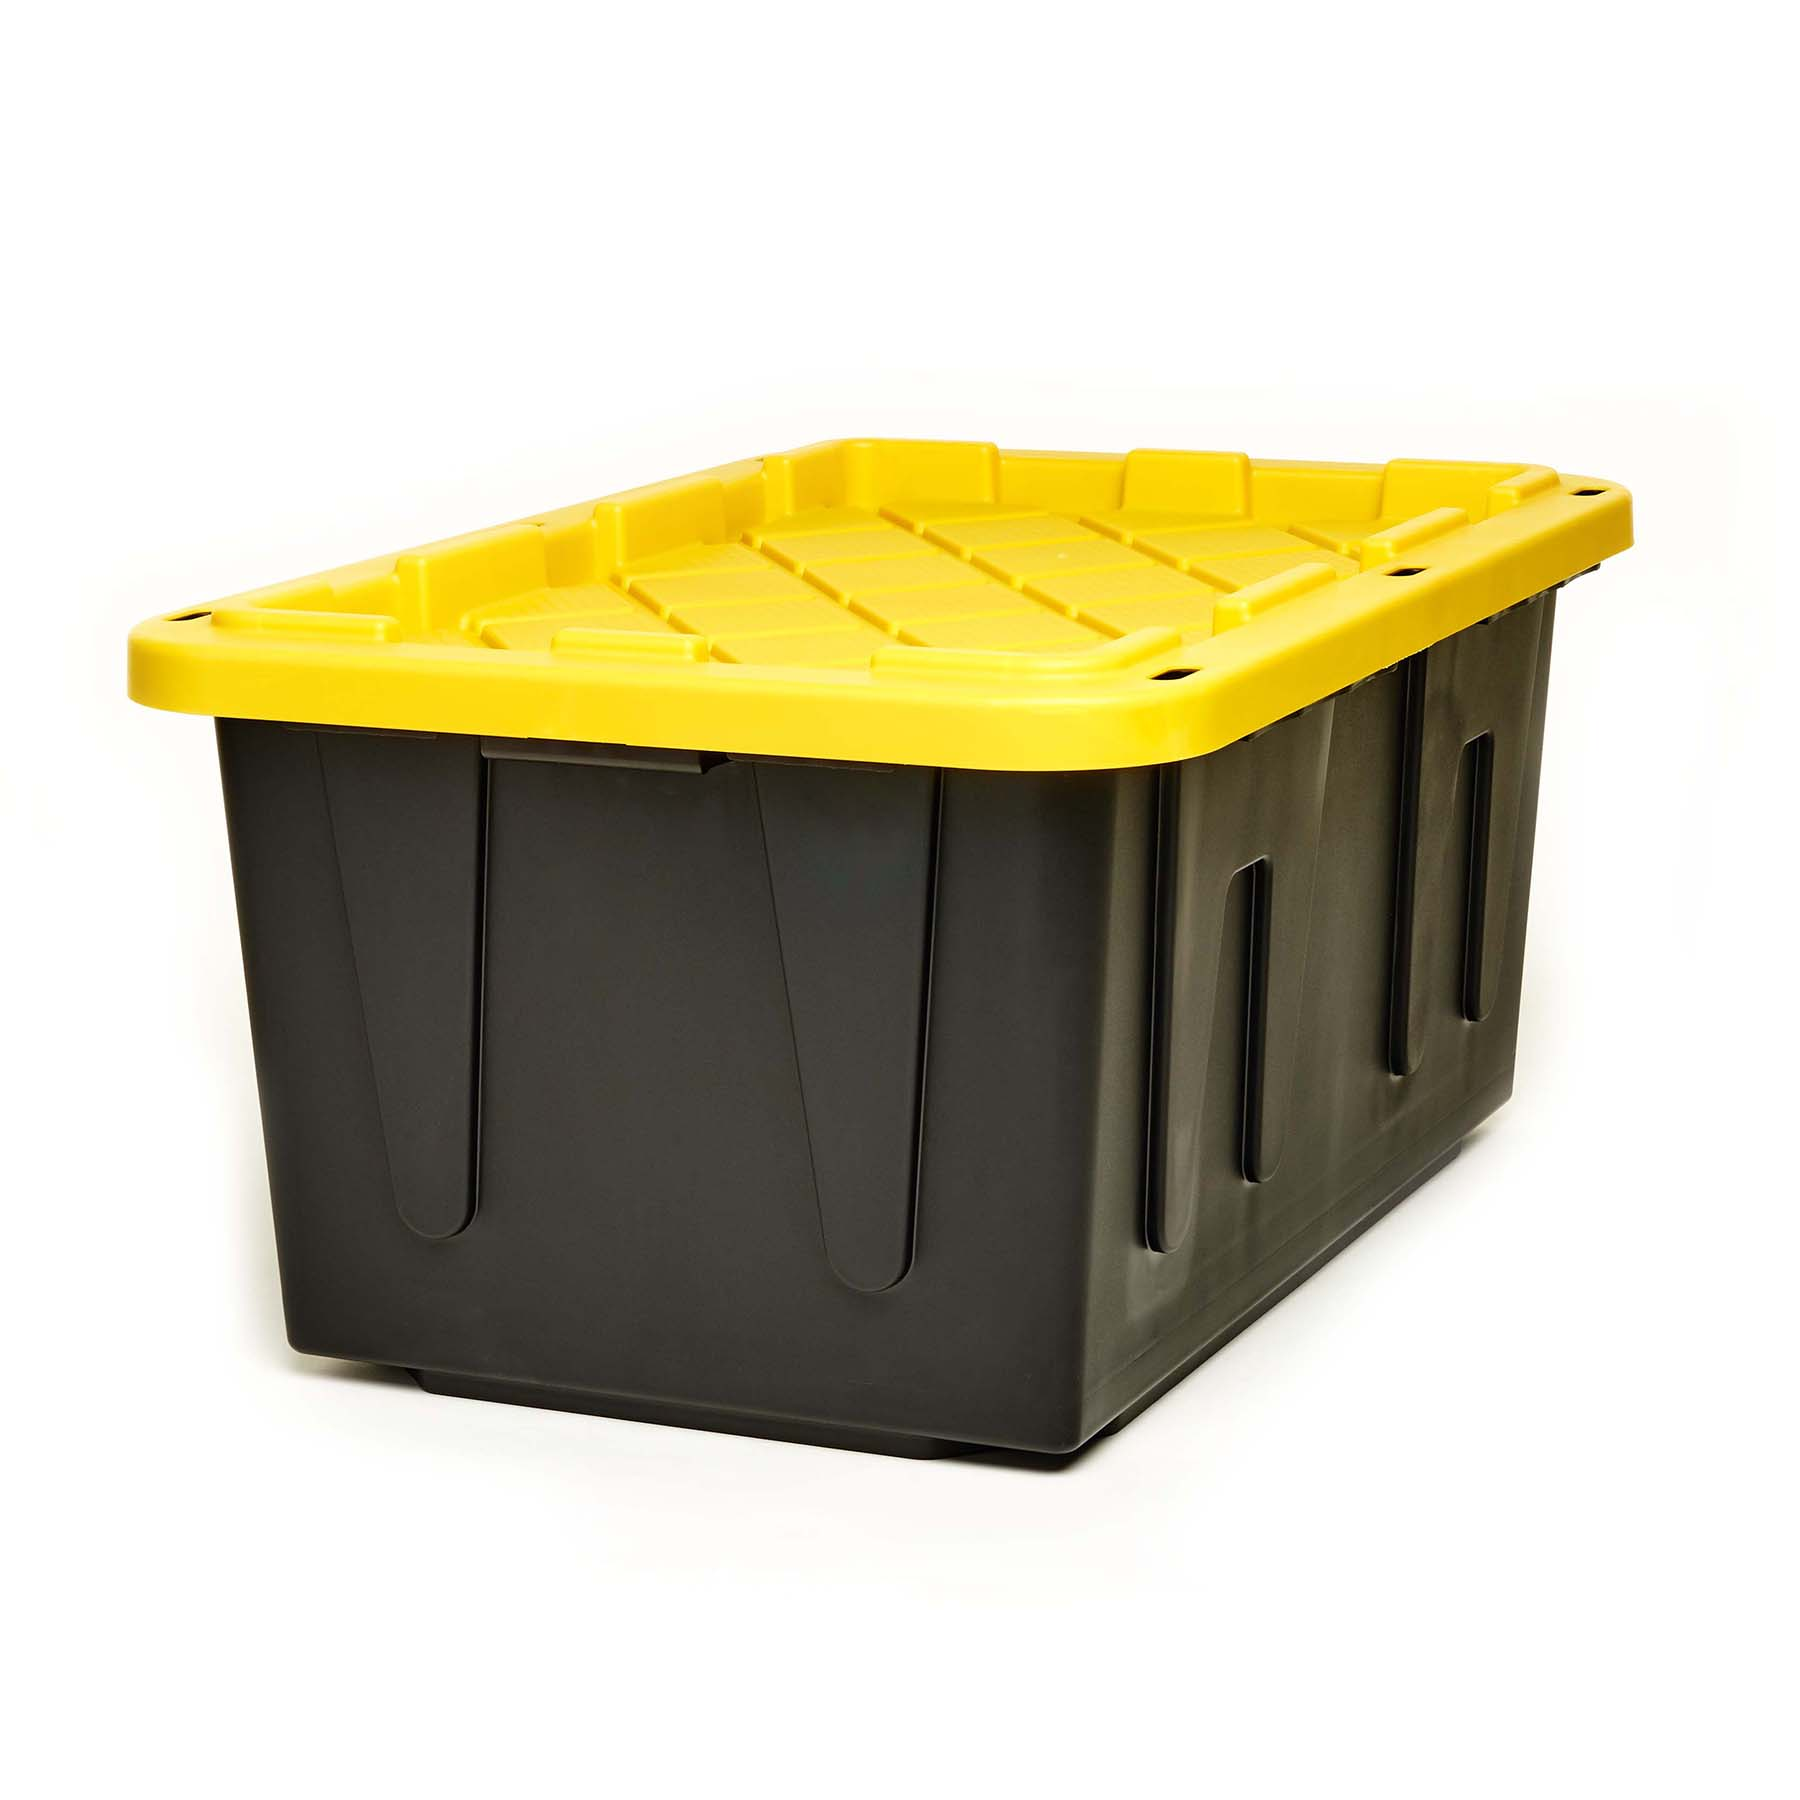 Durabilt by Homz - 27 Gallon Tough Tote, Black and Yellow, Set of 2